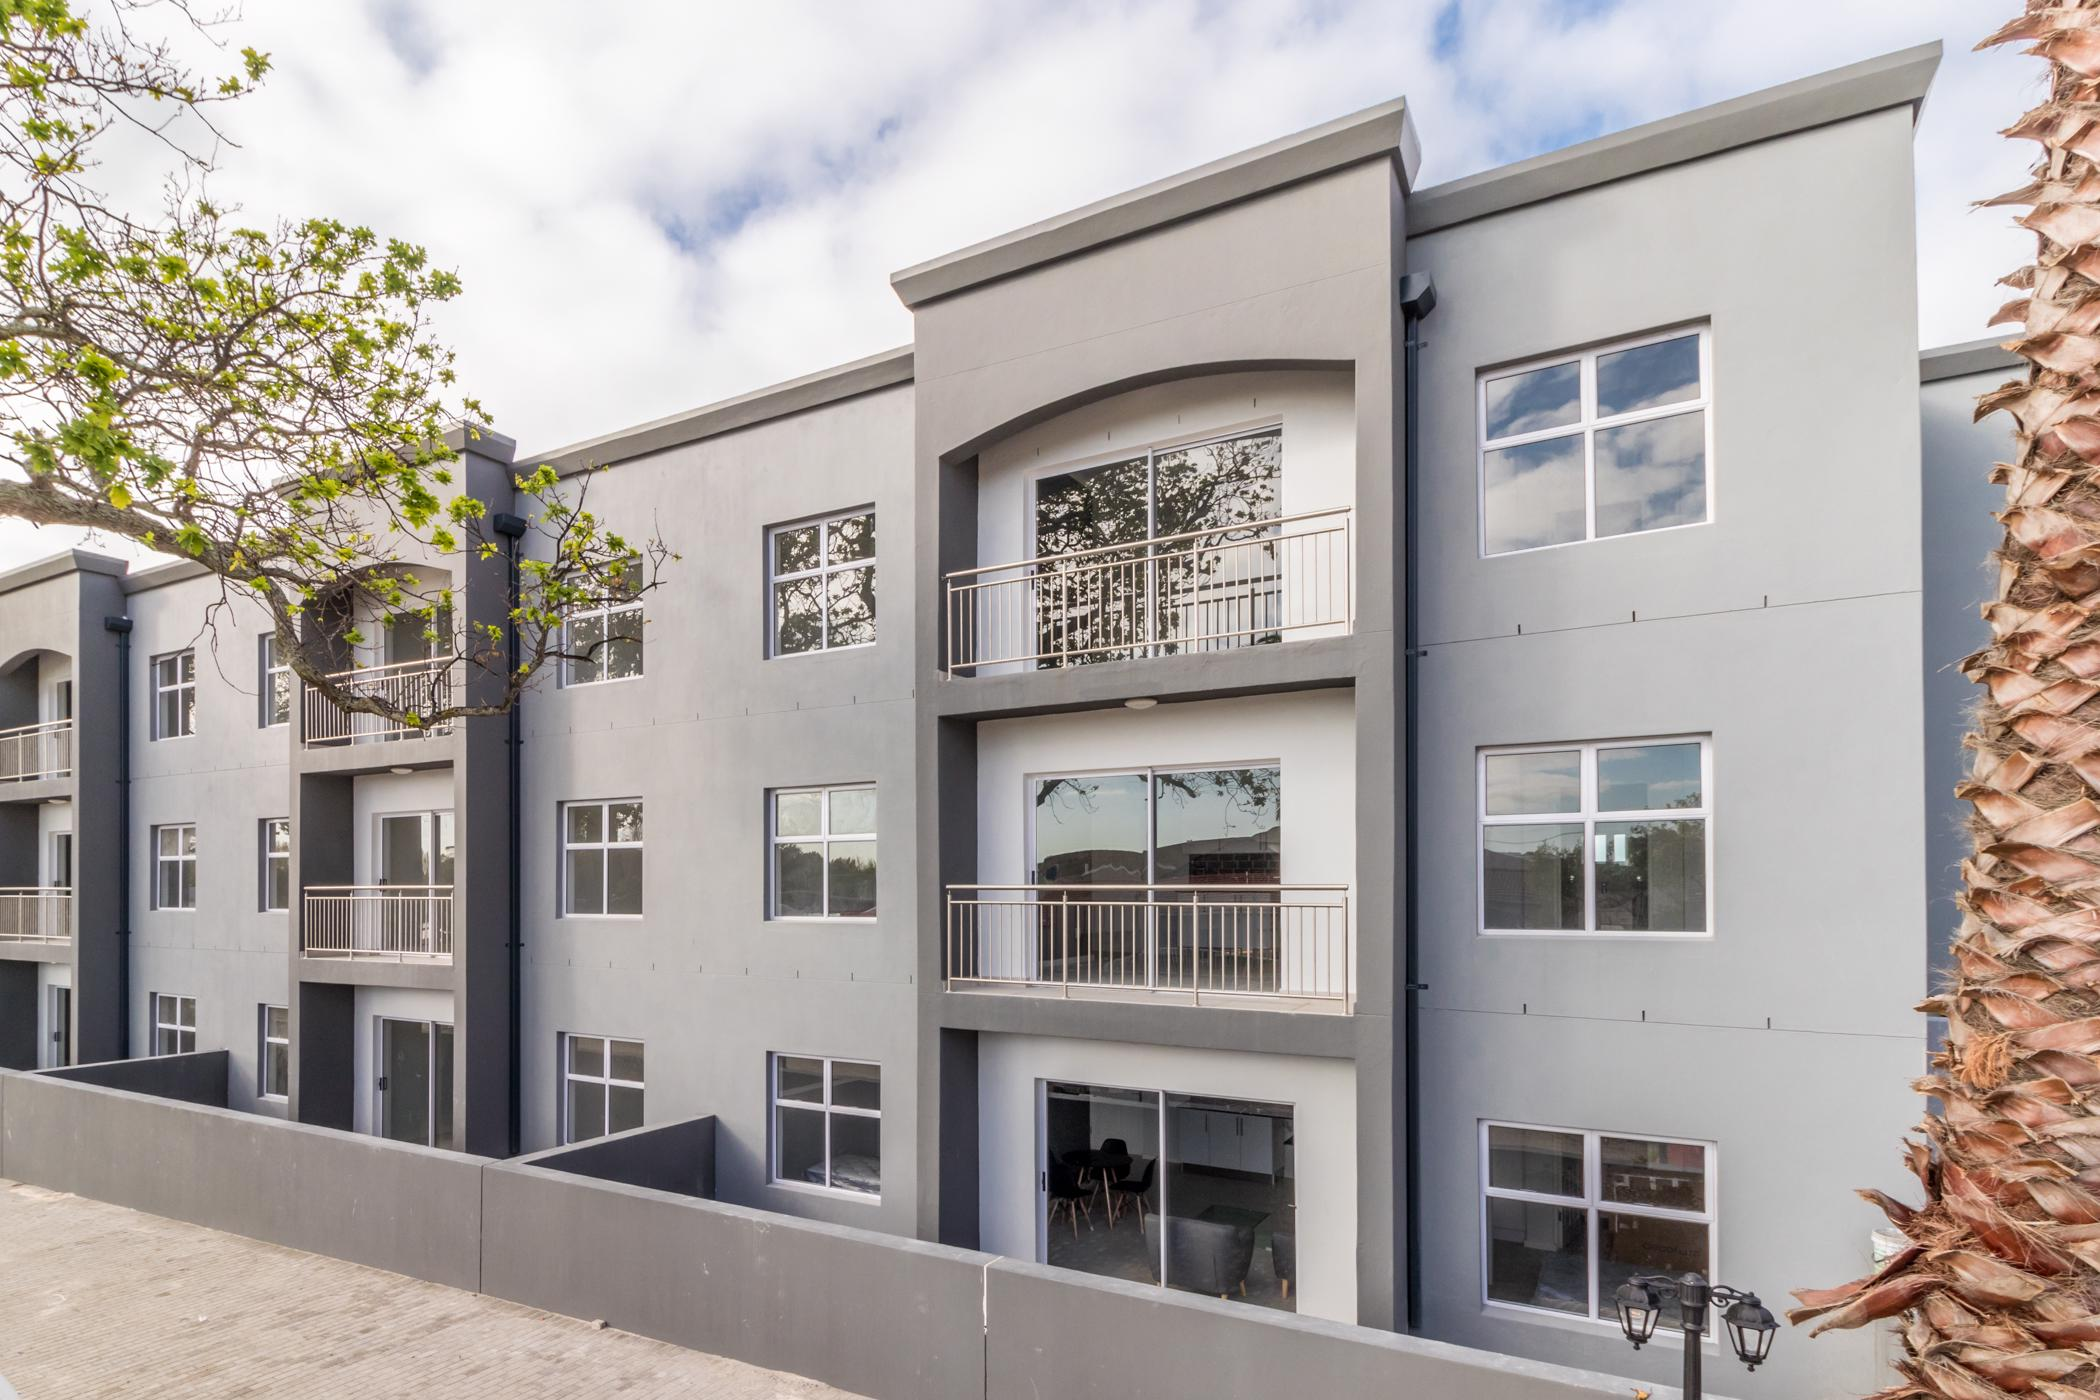 https://listing.pamgolding.co.za/images/properties/201909/1509512/H/1509512_H_9.jpg